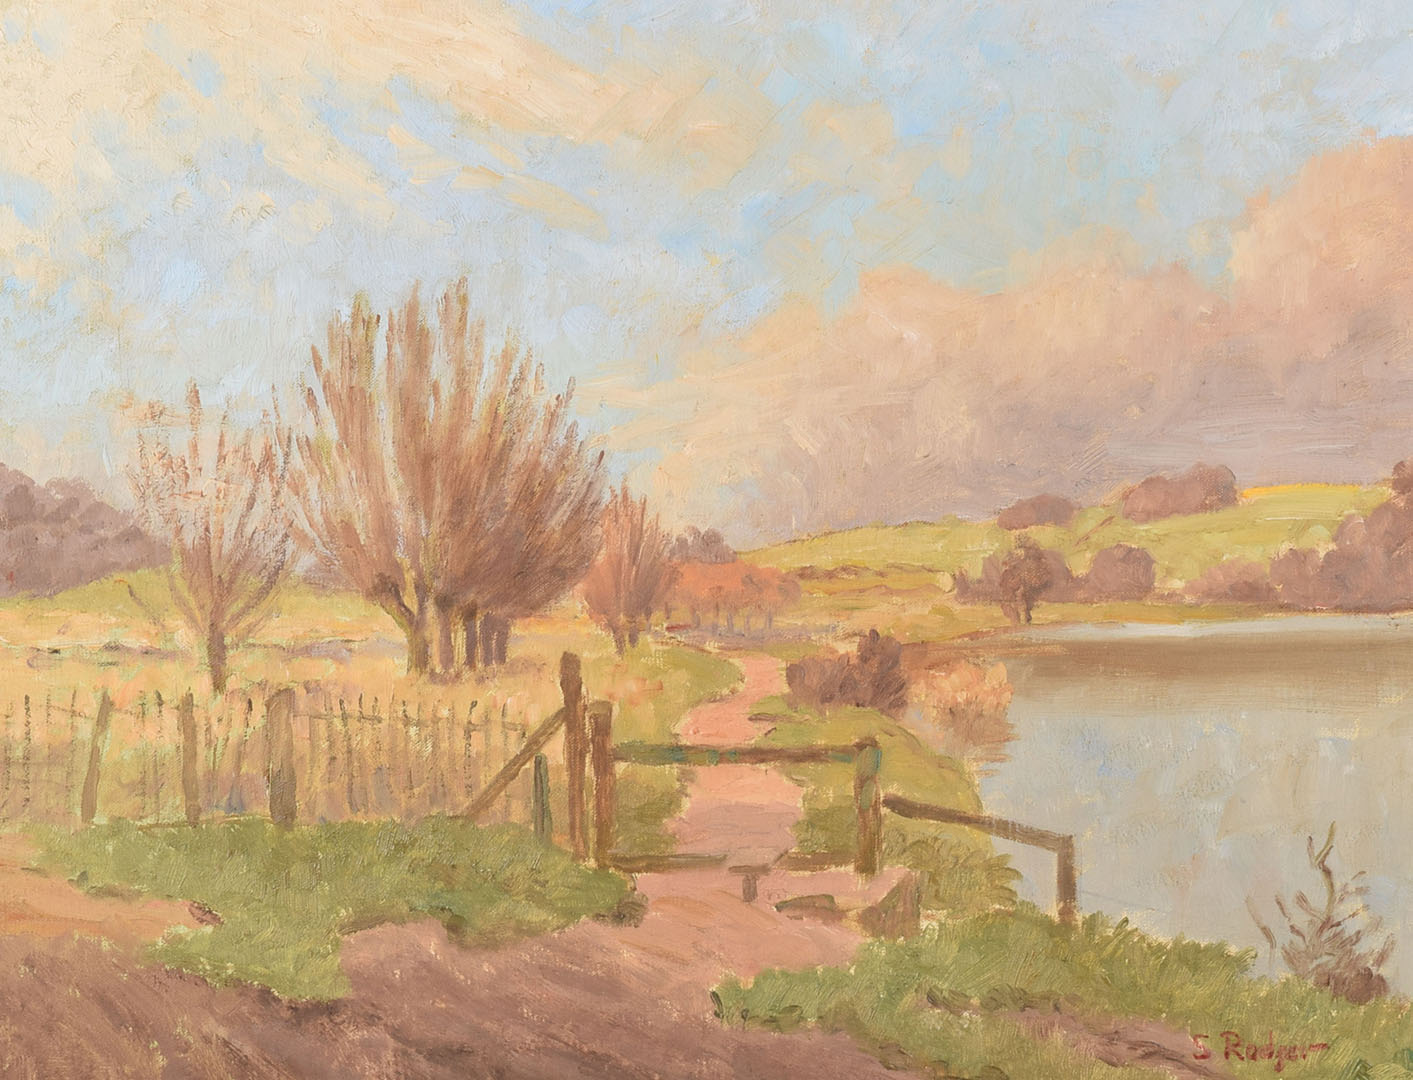 Lot 485 - Attributed to Sidney Bertram Robertson Rodger (b.1916), a 1970s river scene oil on canvas,